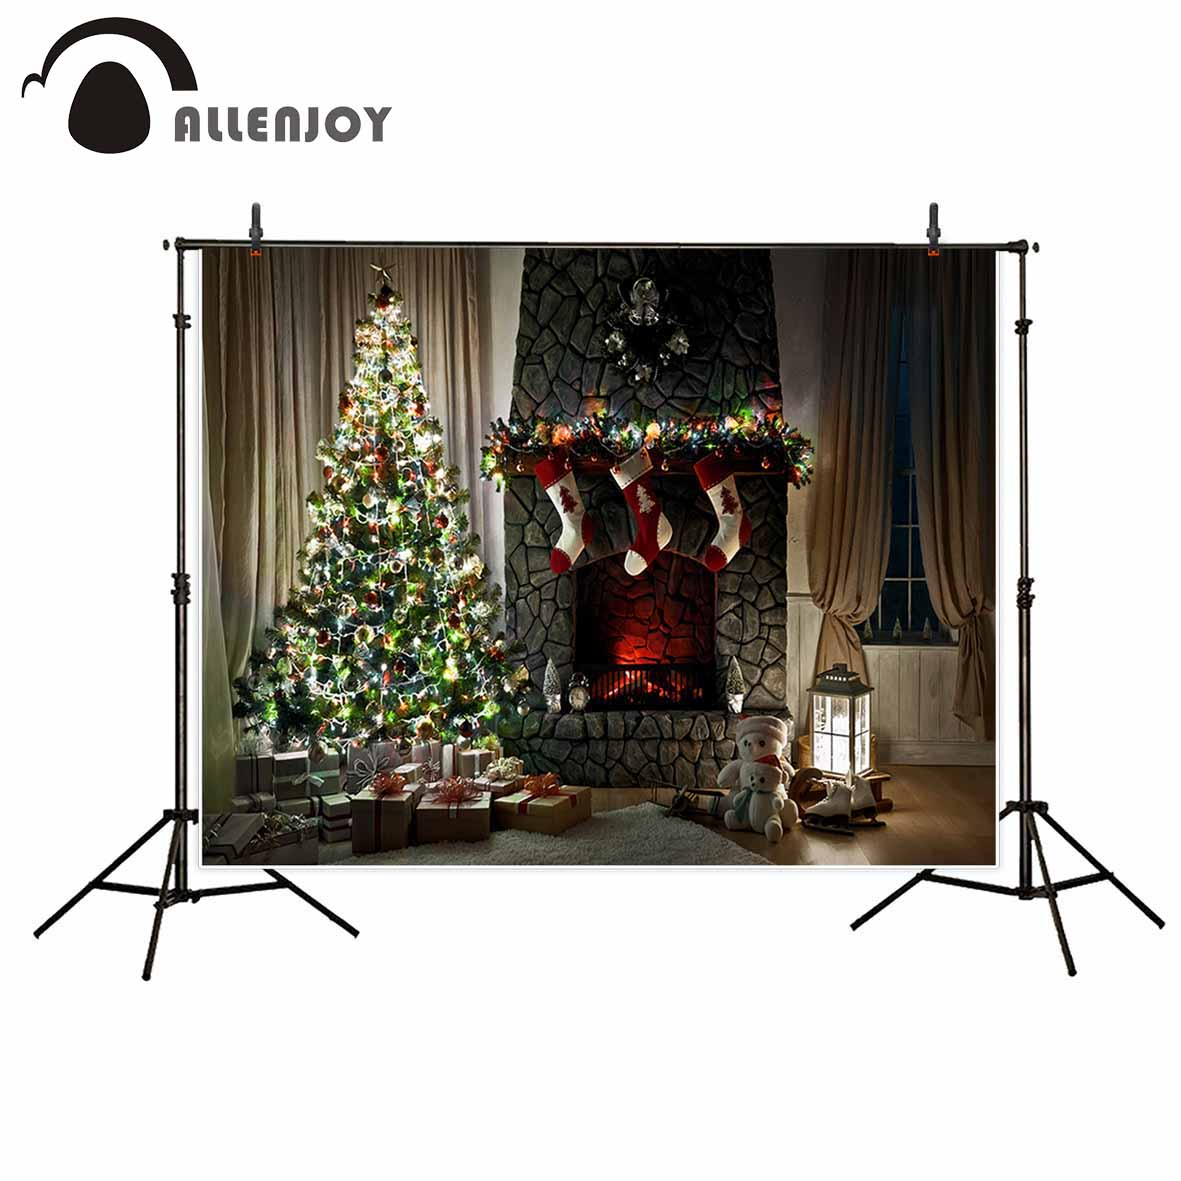 Allenjoy photography backdrop Christmas glitter fireplace tree stone room background photocall photo prop original design купить